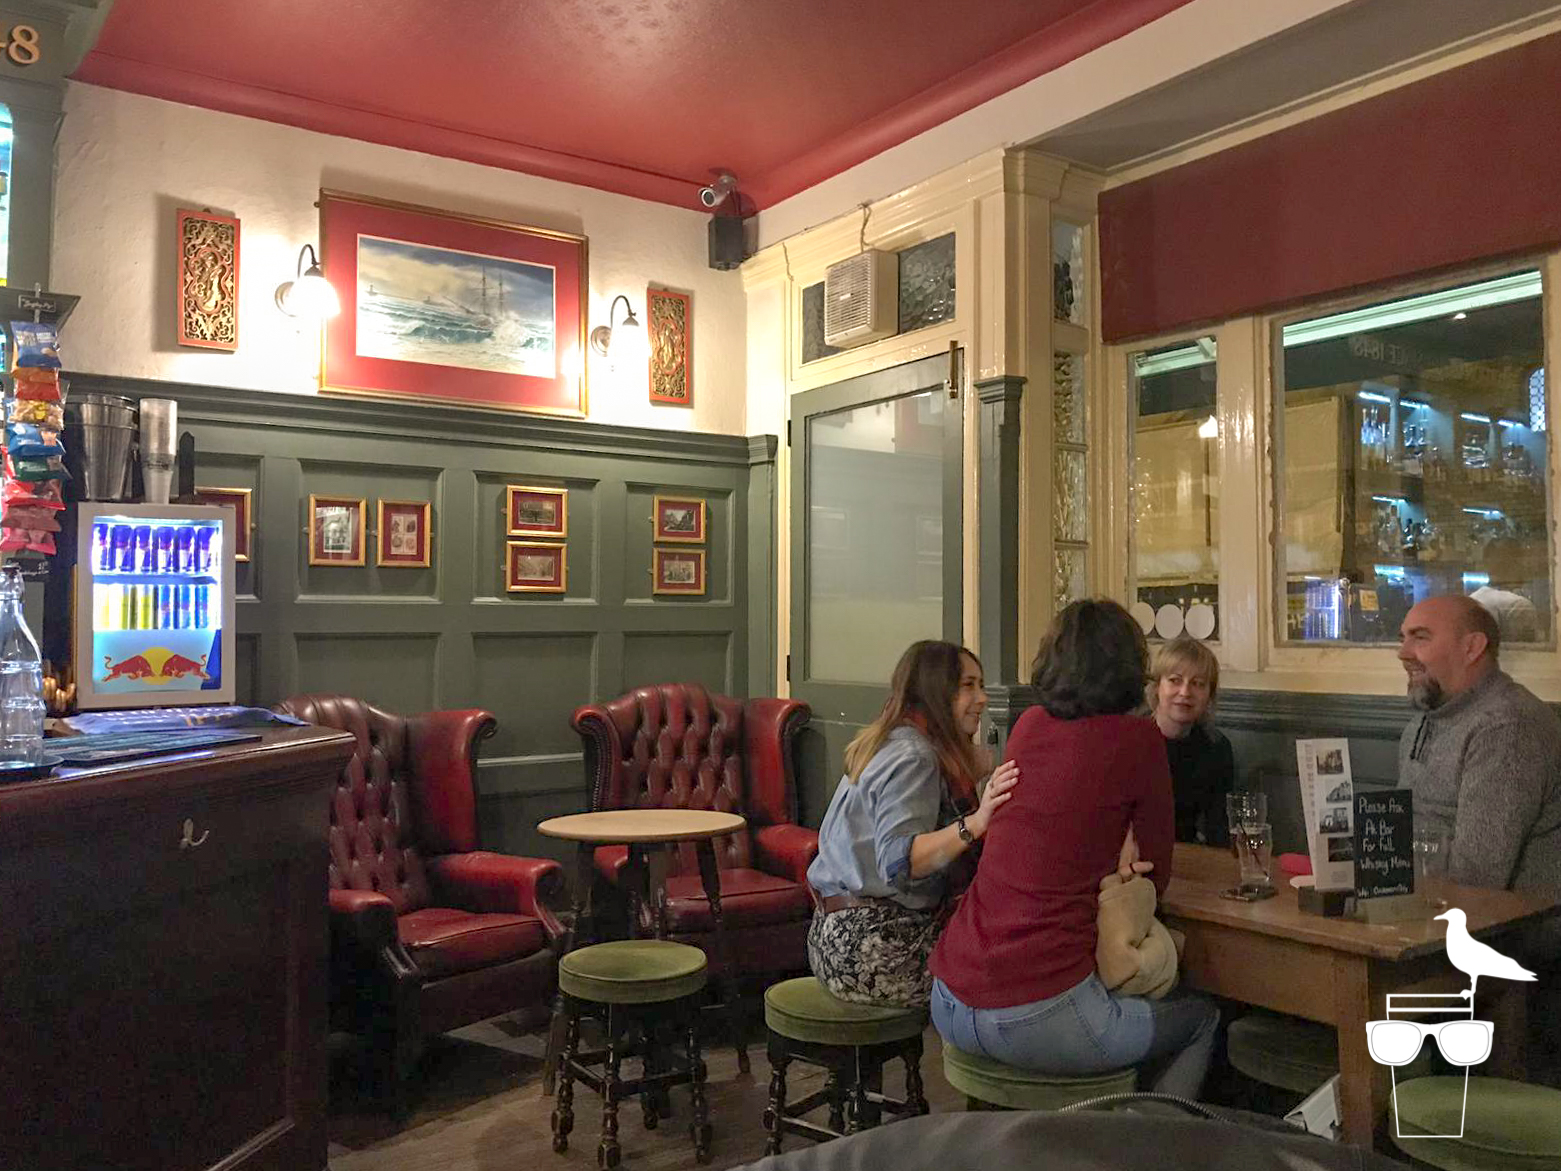 waggon and horses pub brighton armchairs in corner